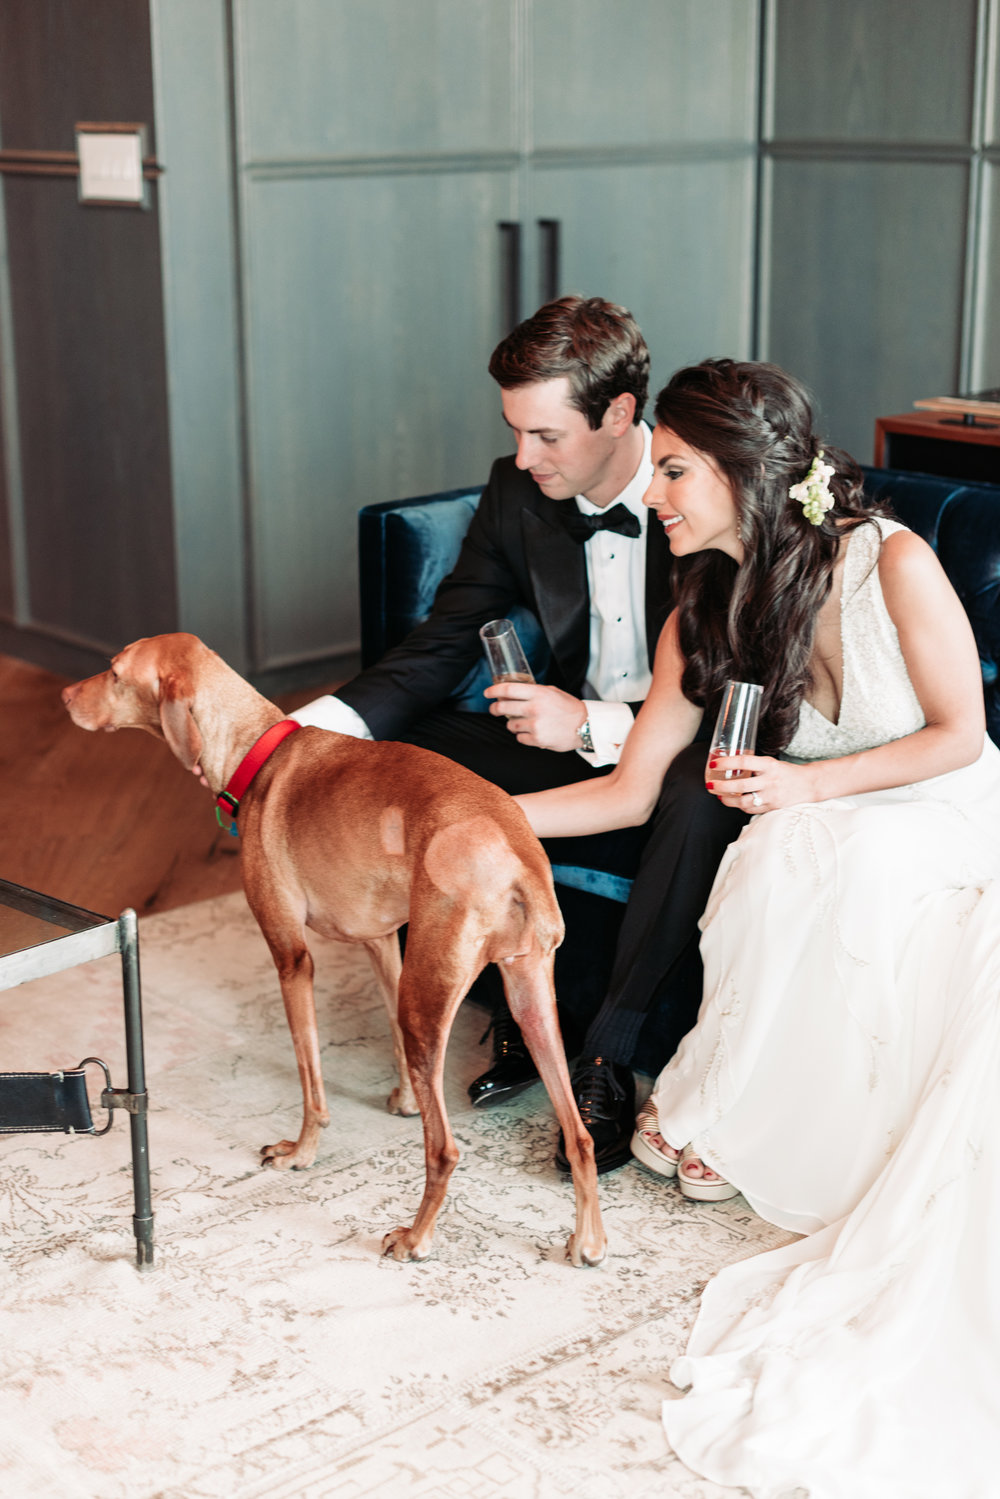 Wedding portrait bride groom wedding reveal gown tuxedo dog